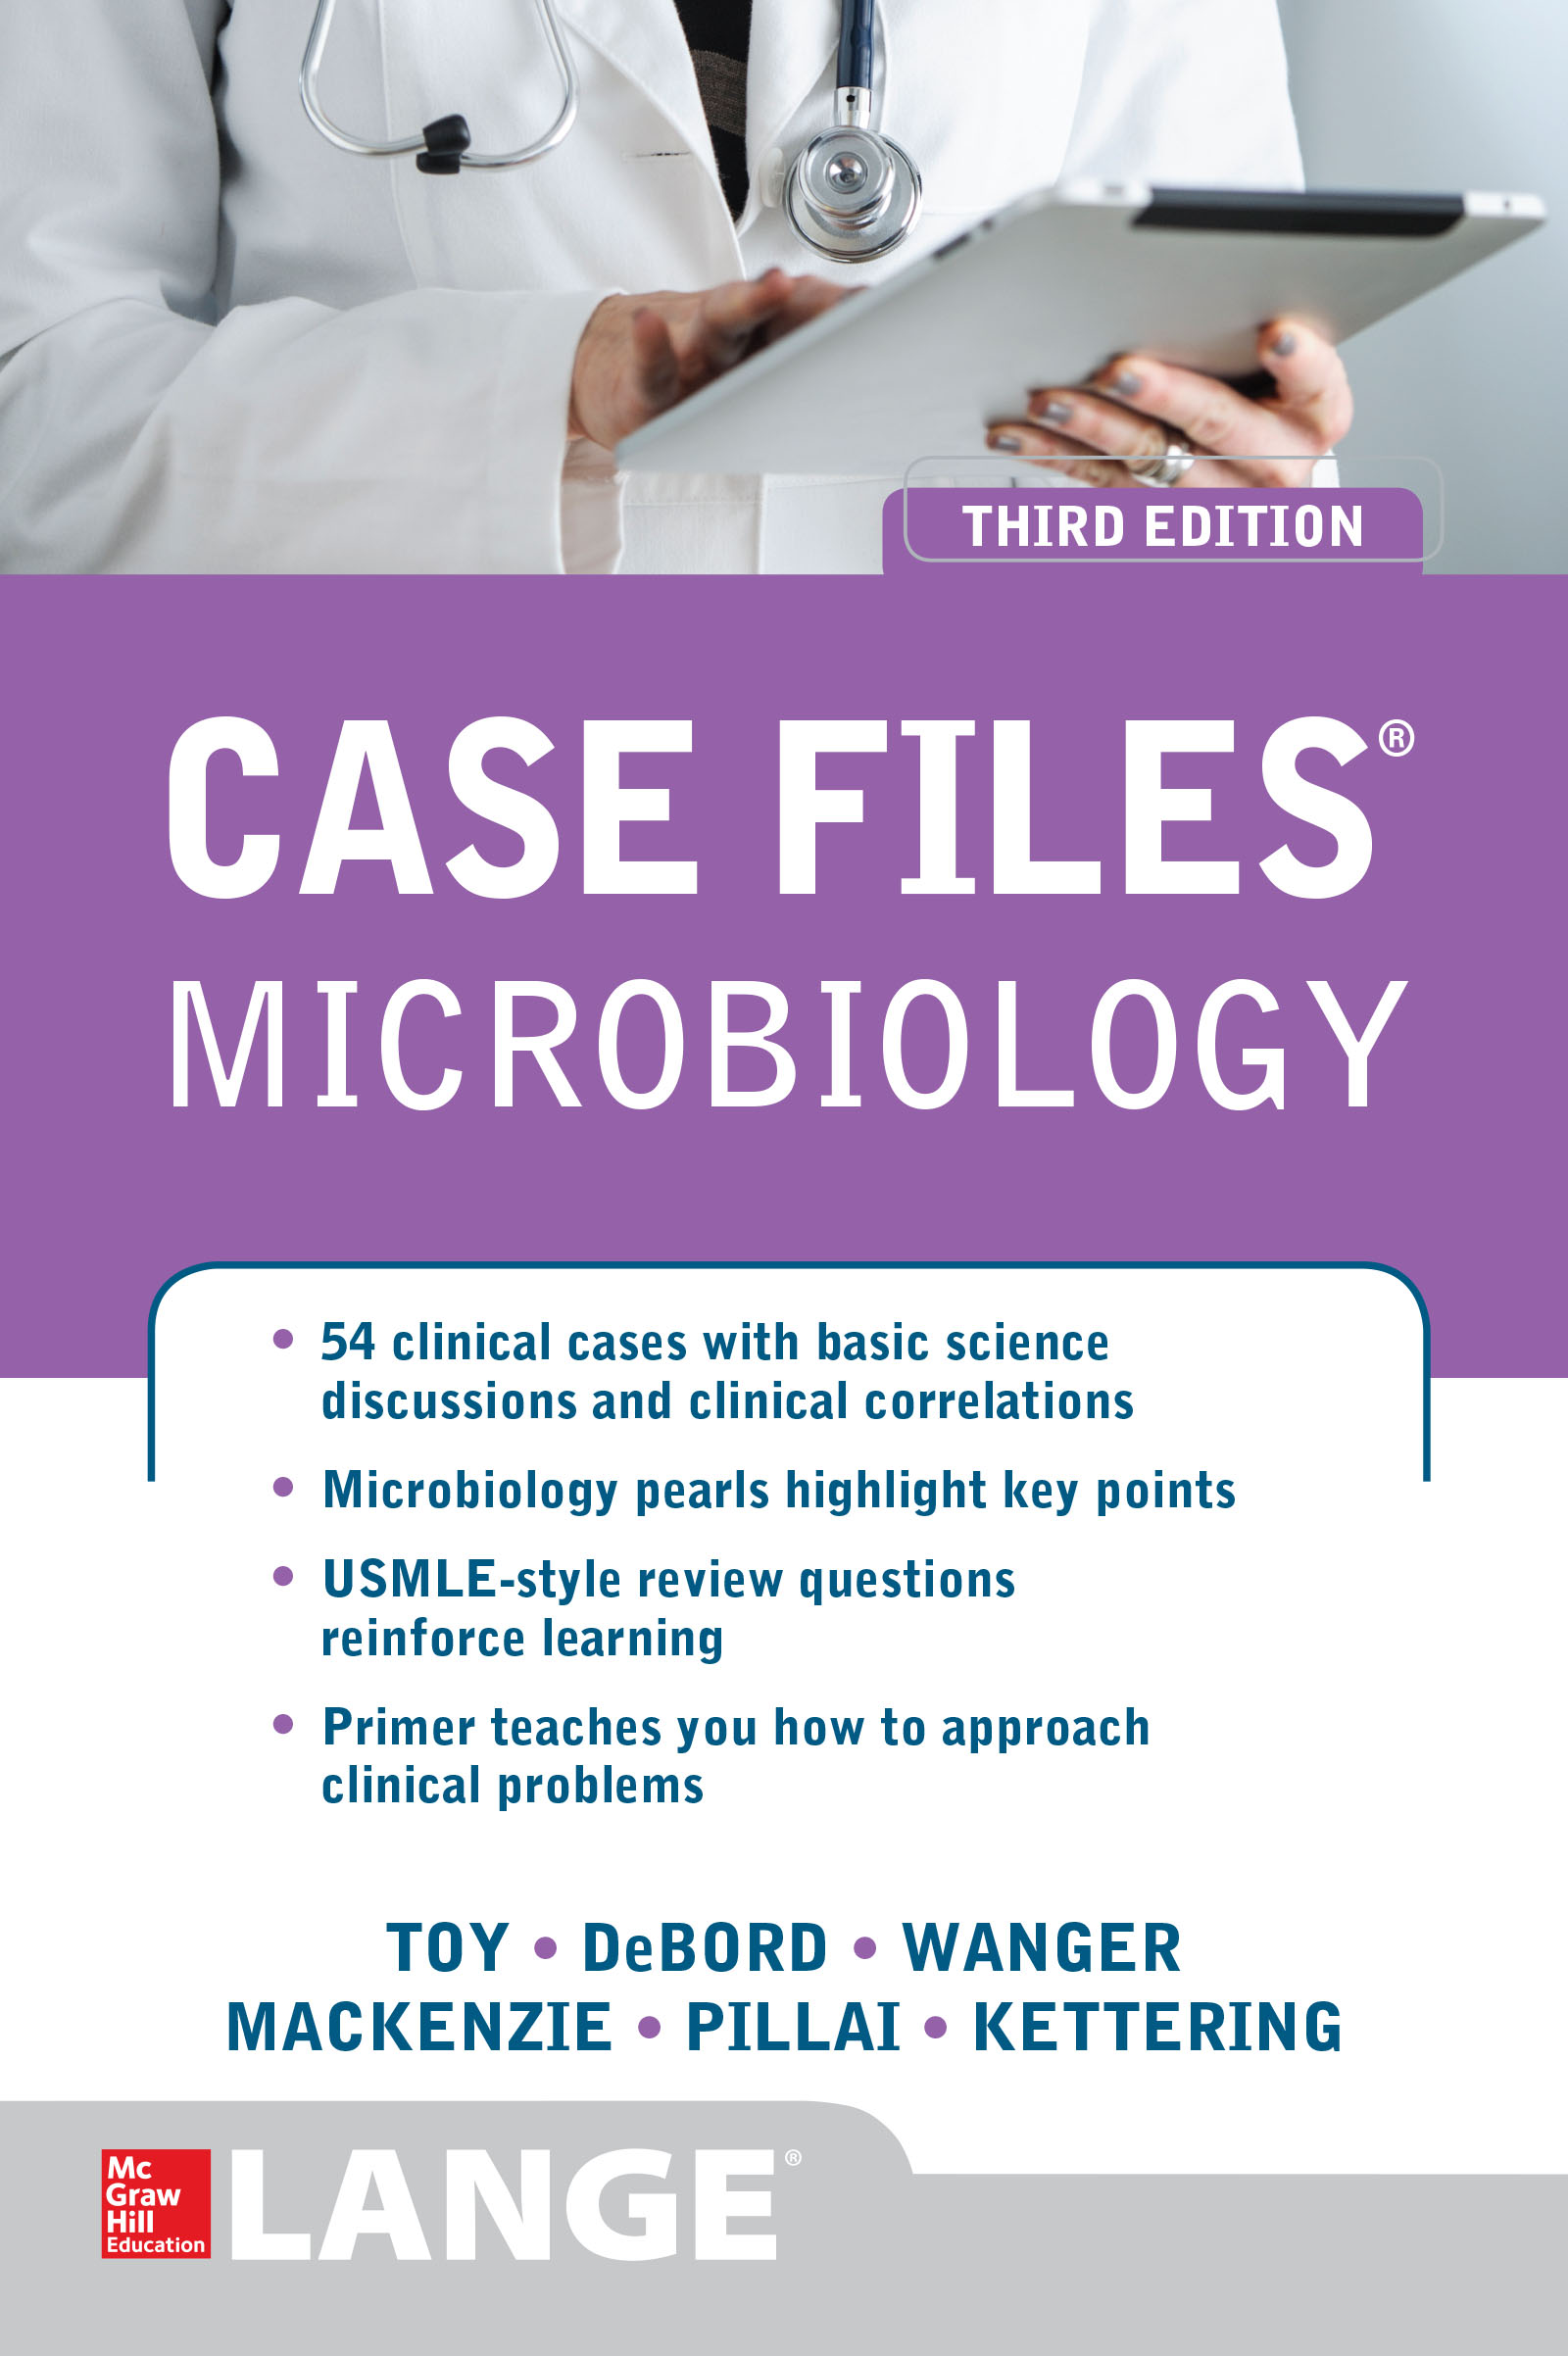 microbiology case study help com careers in microbiology case study help microbiology study tips lab sequence data clinical case studies interactive time line